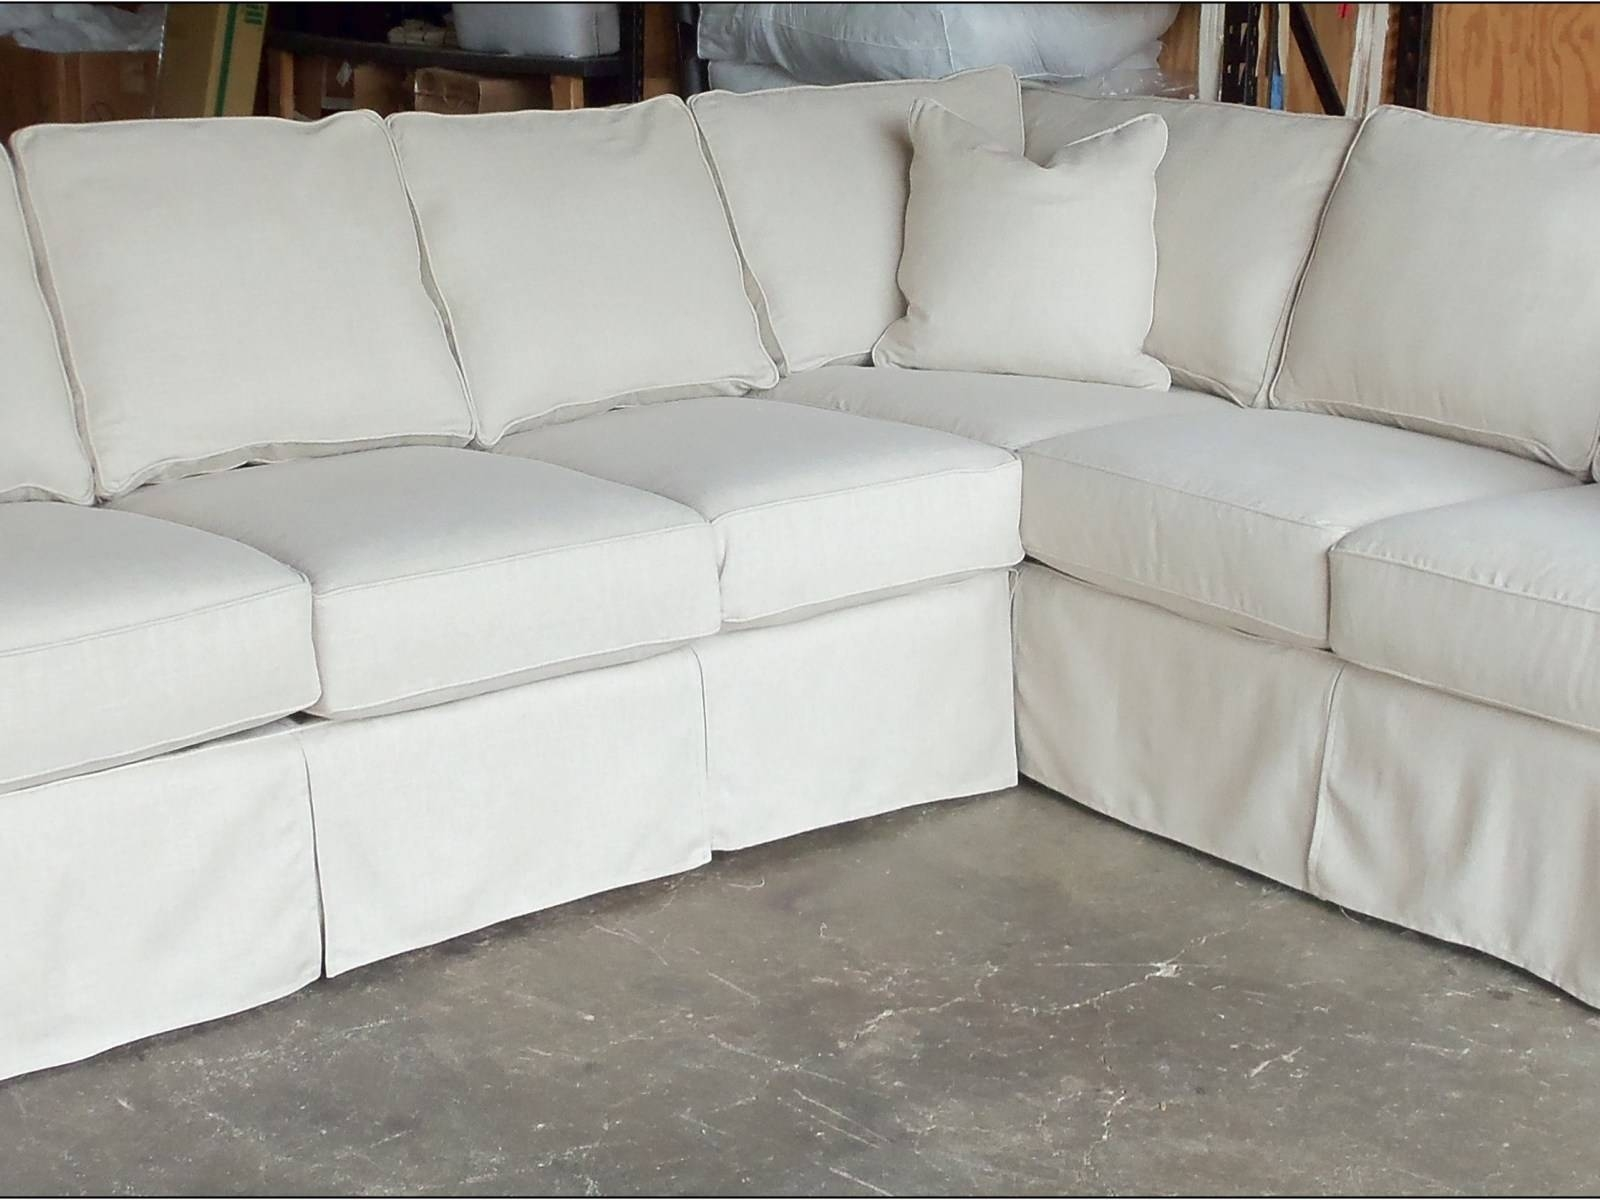 ▻ Sofa : 9 Lovely Sofa Covers For Sectionals Sectional Couch pertaining to Cozy Sectional Sofas (Image 30 of 30)